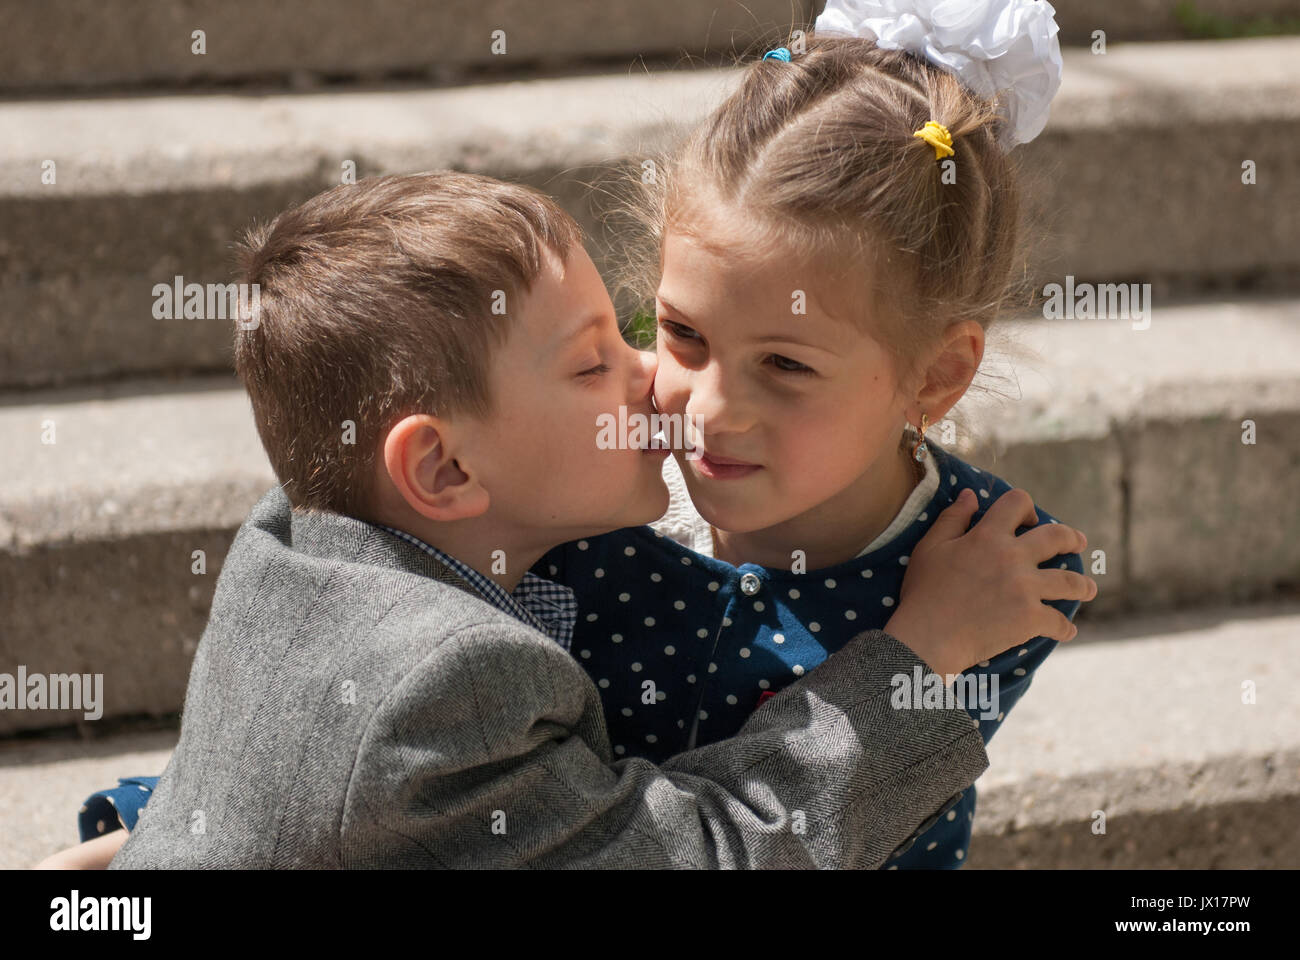 Boy And Girl Kissing Stock Photos  Boy And Girl Kissing -8871